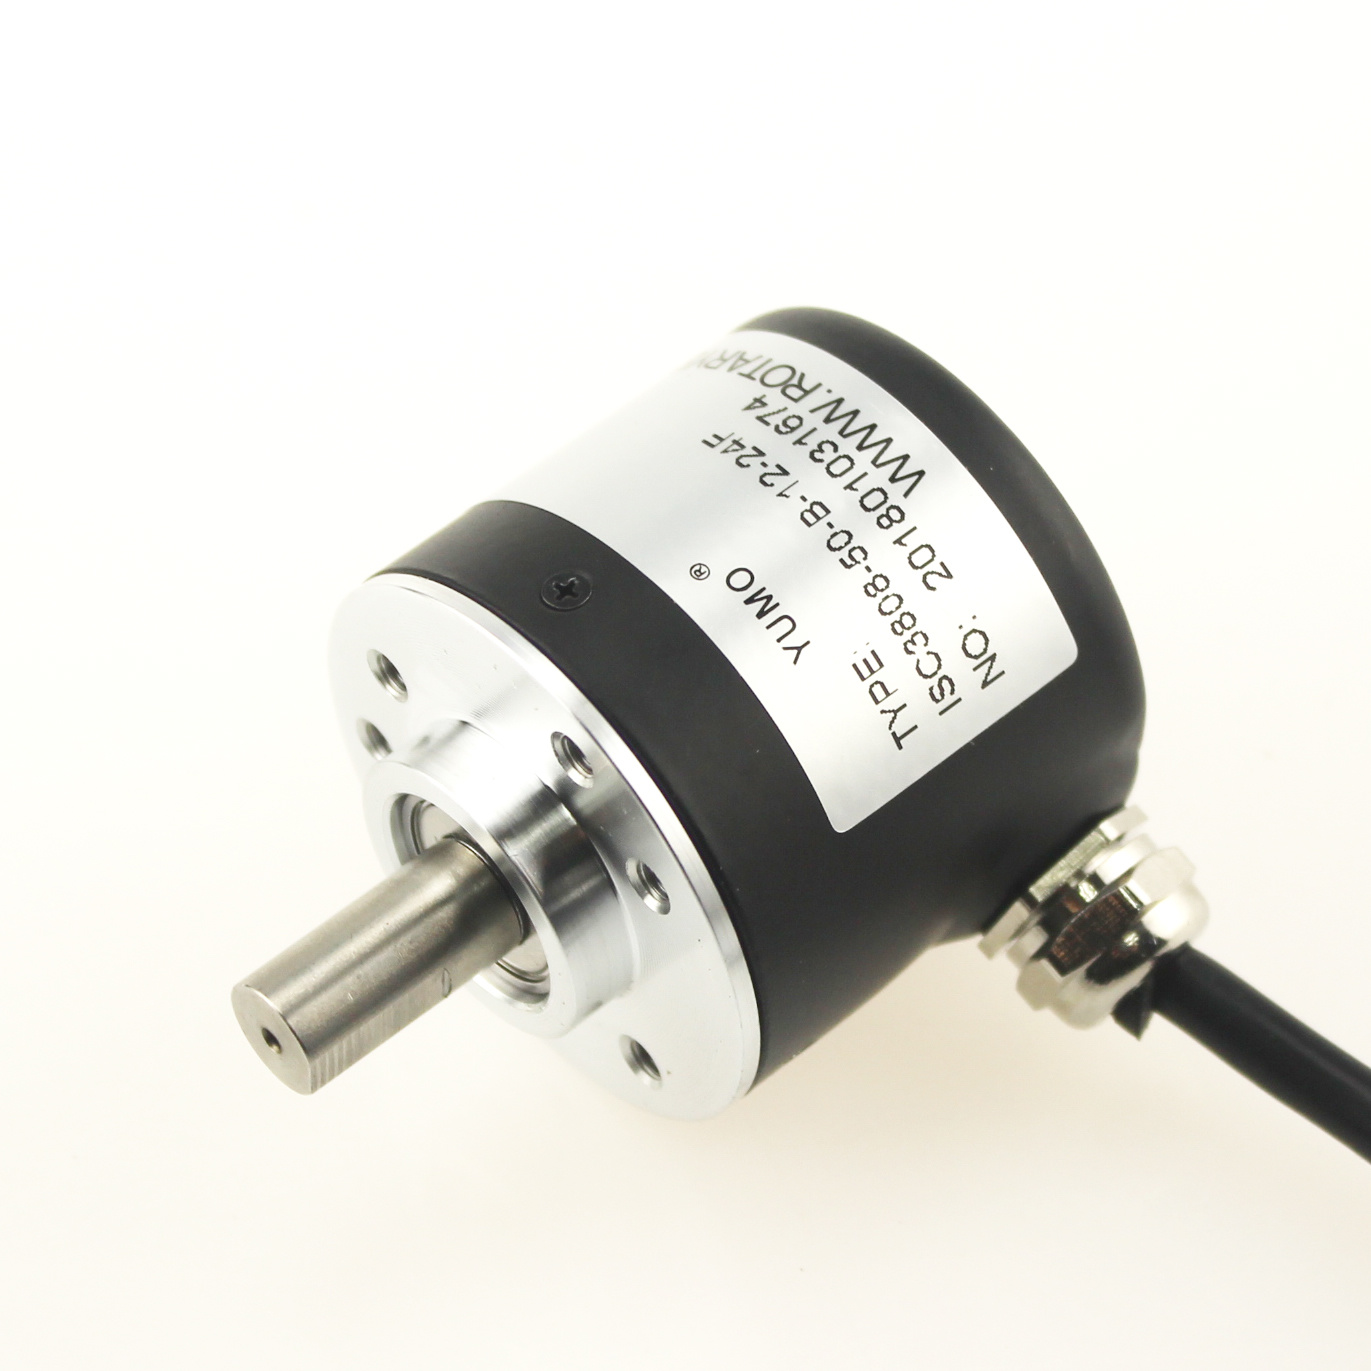 [Hot Item] Isc3808 Small Pulse Ab Phase Push-Pull Rotary Encoder (42PPR,  50PPR)